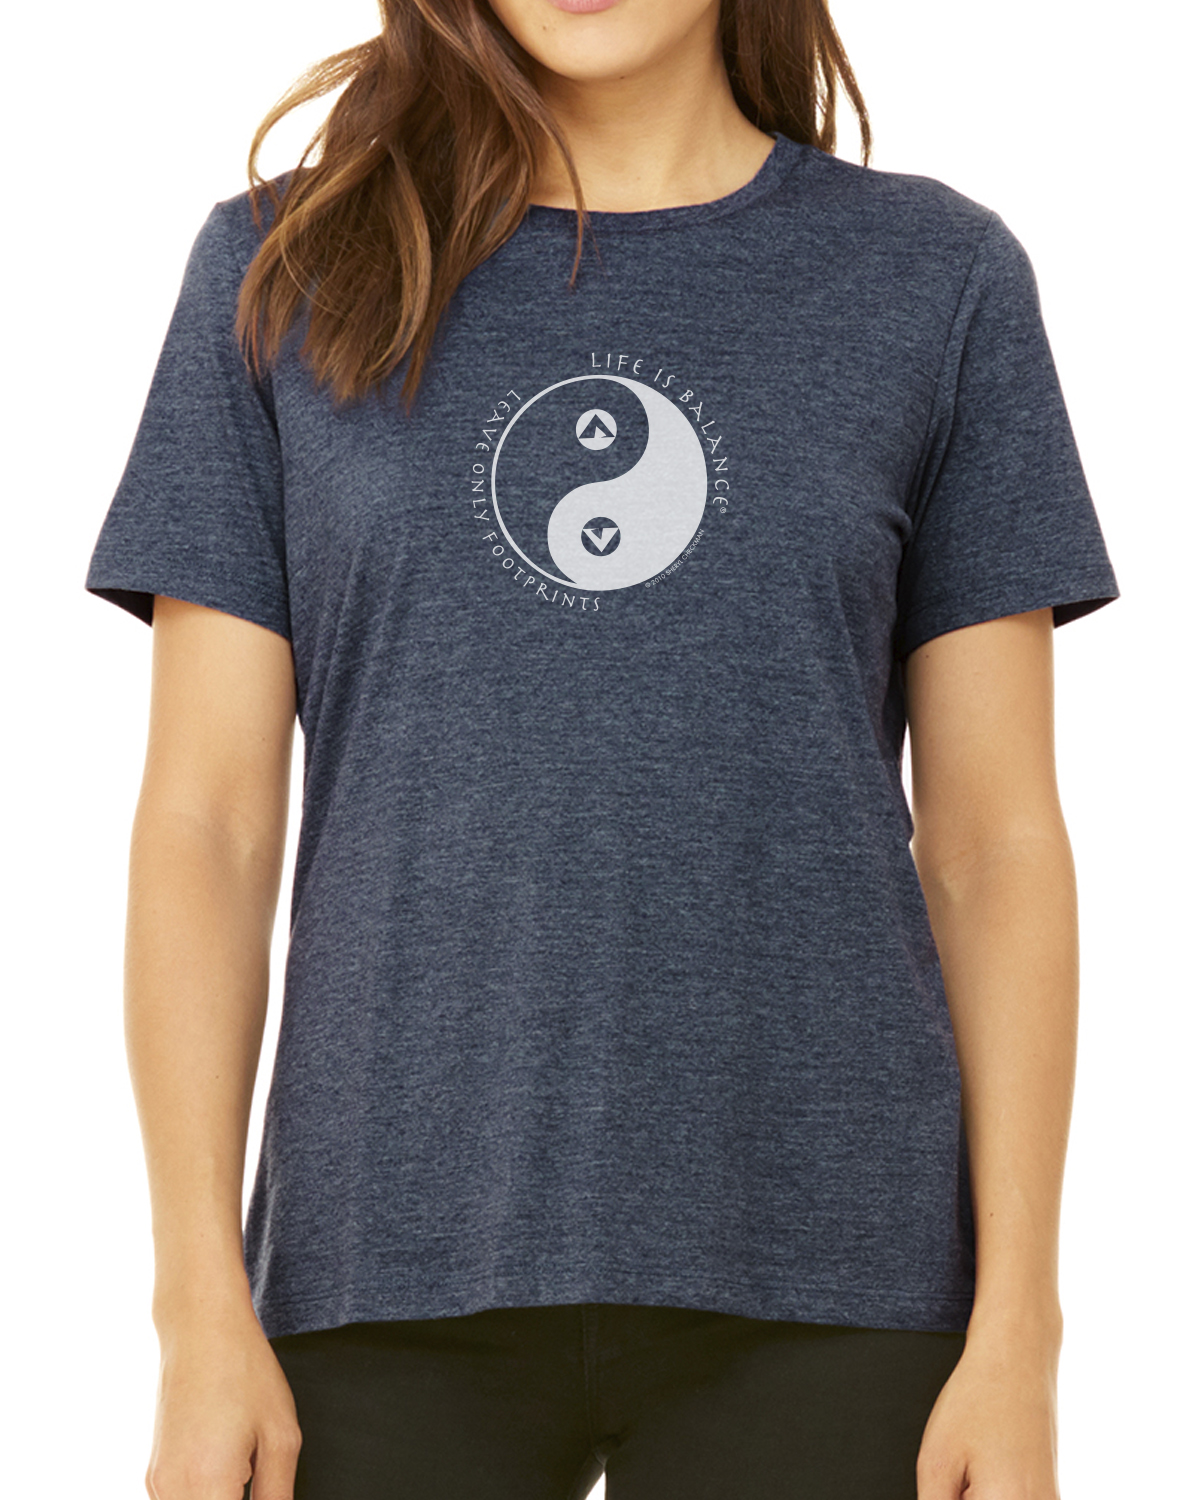 Women's short-sleeve camping t-shirt (Heather Navy)